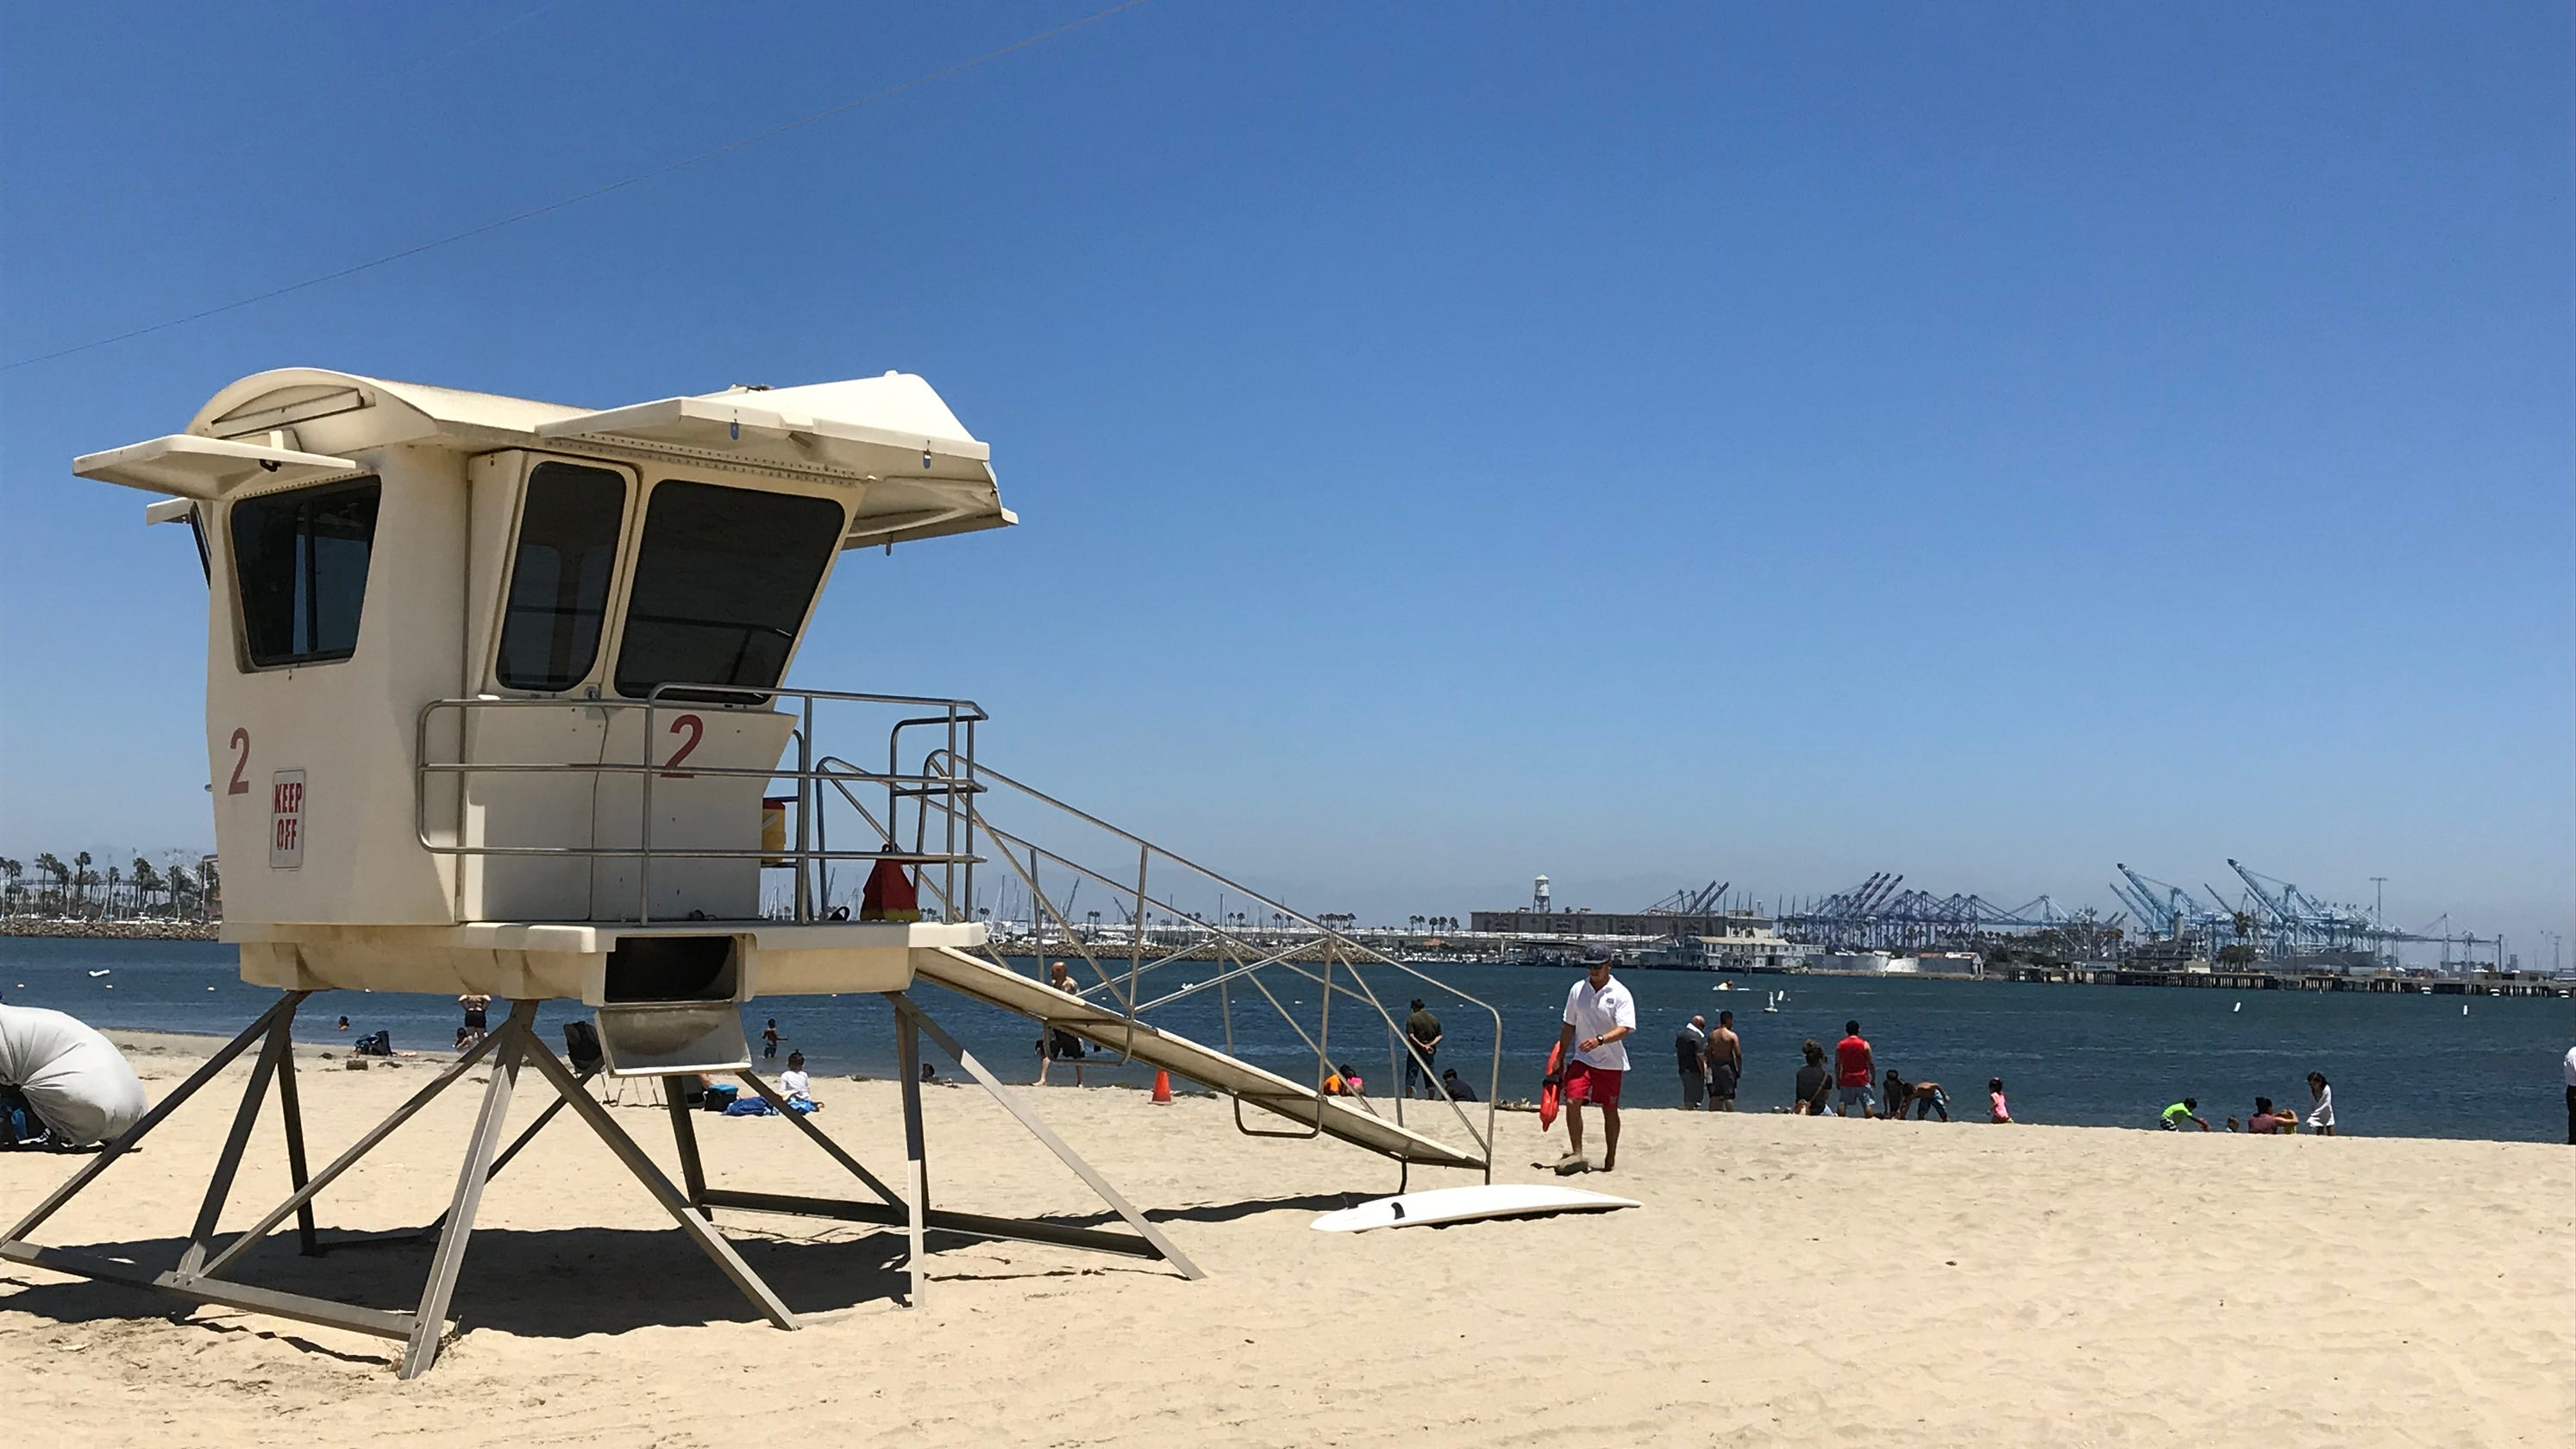 Safe beaches or bacteria? Dirtiest beaches list revised